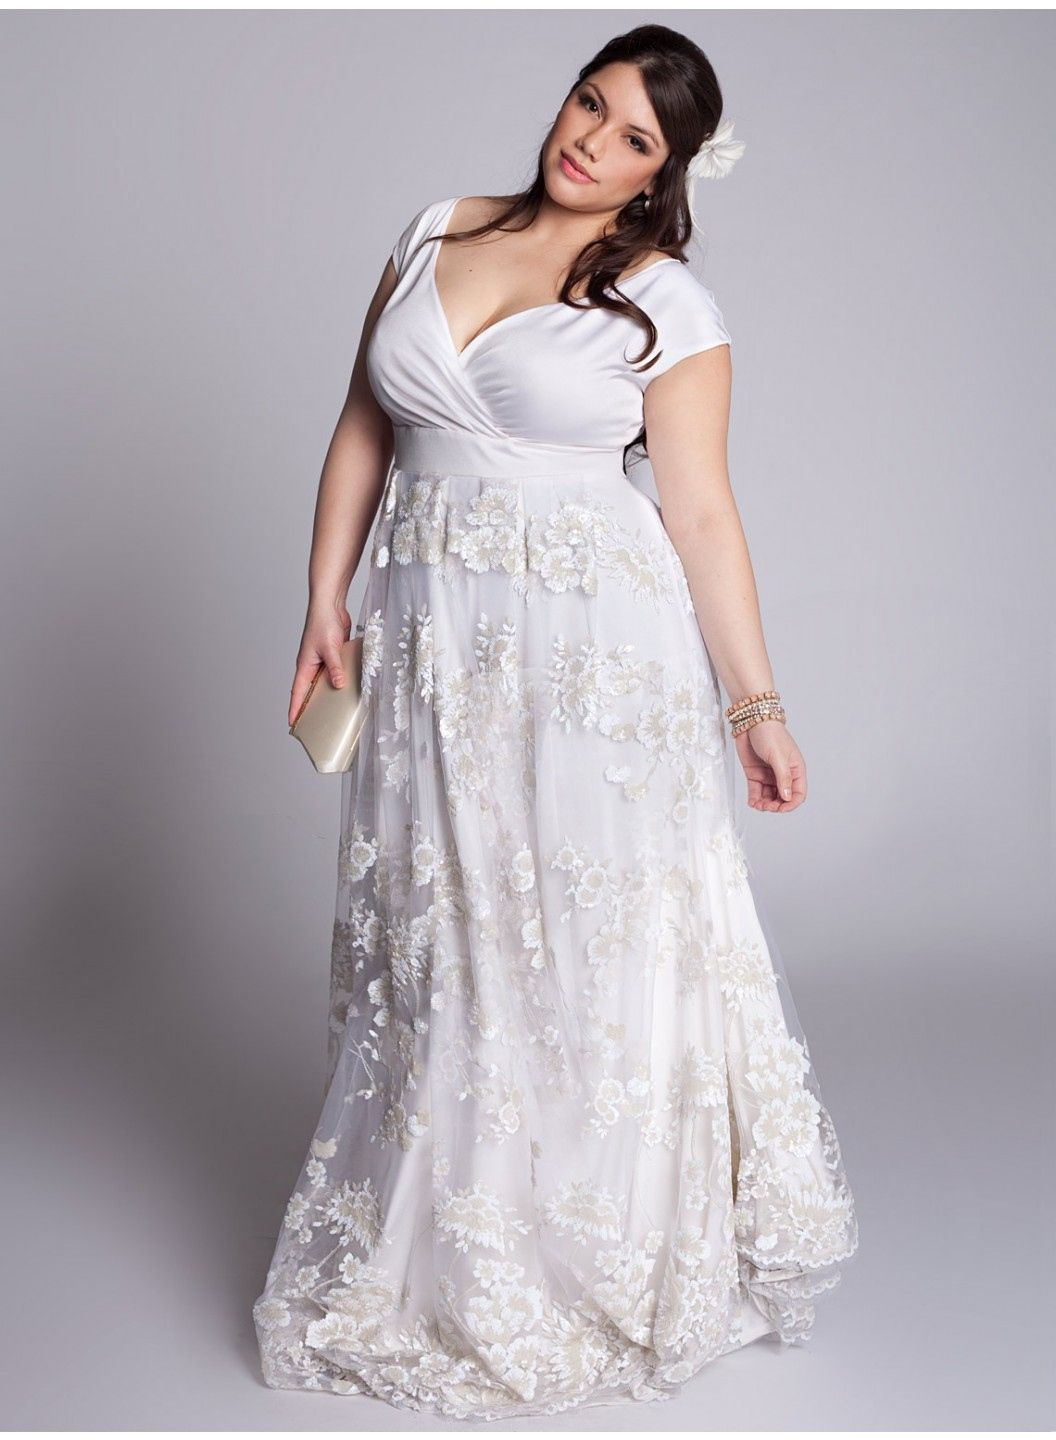 How to Dress for Beach Wedding - Wedding Dresses for the Mature ...